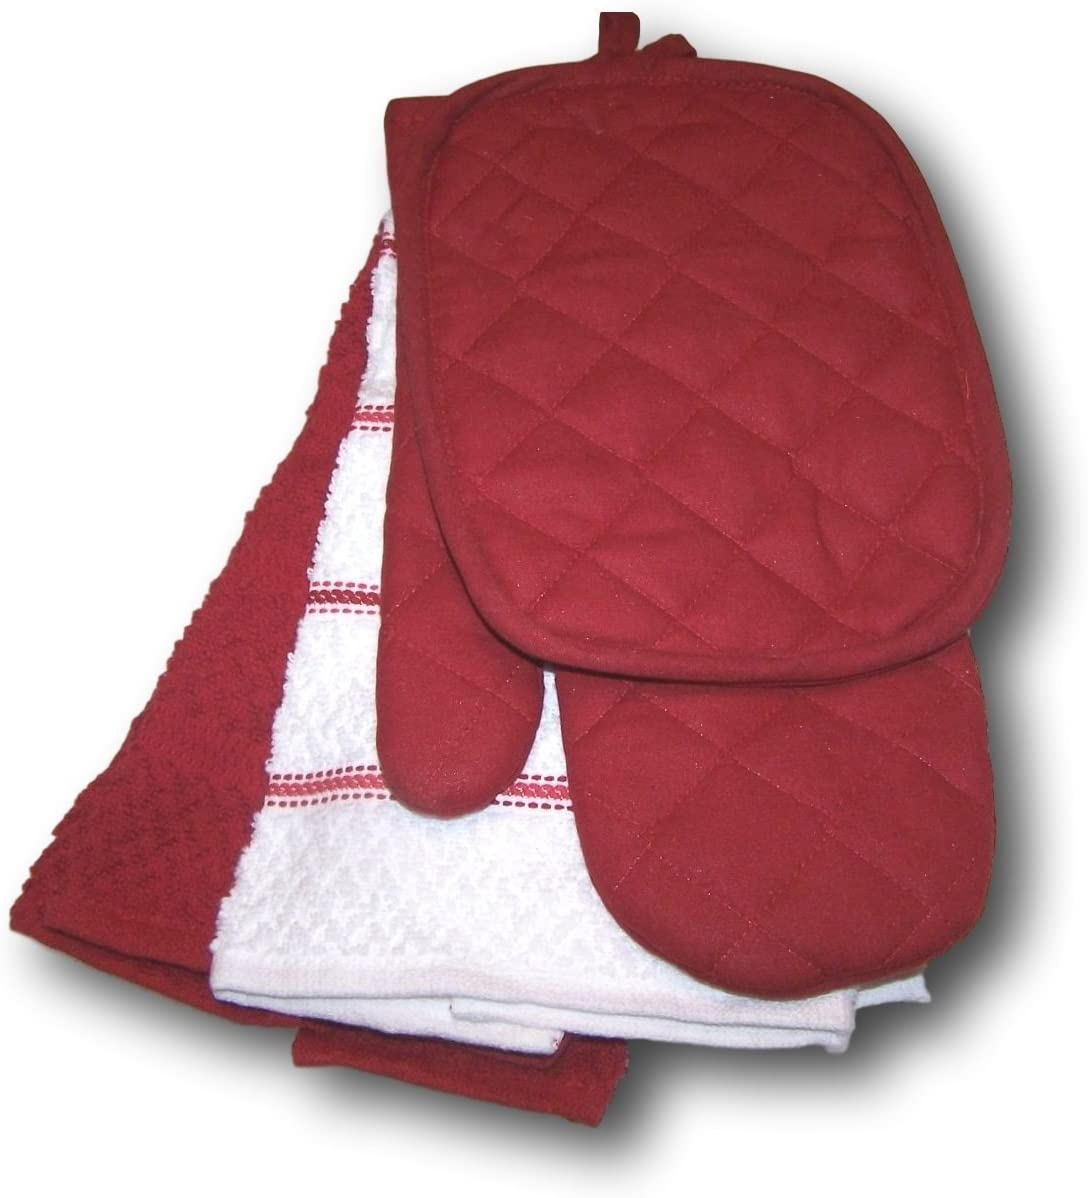 Red Sedona Kitchen Towel Set 5 Piece- Towels, Pot Holders, Oven Mitt by Mainstays